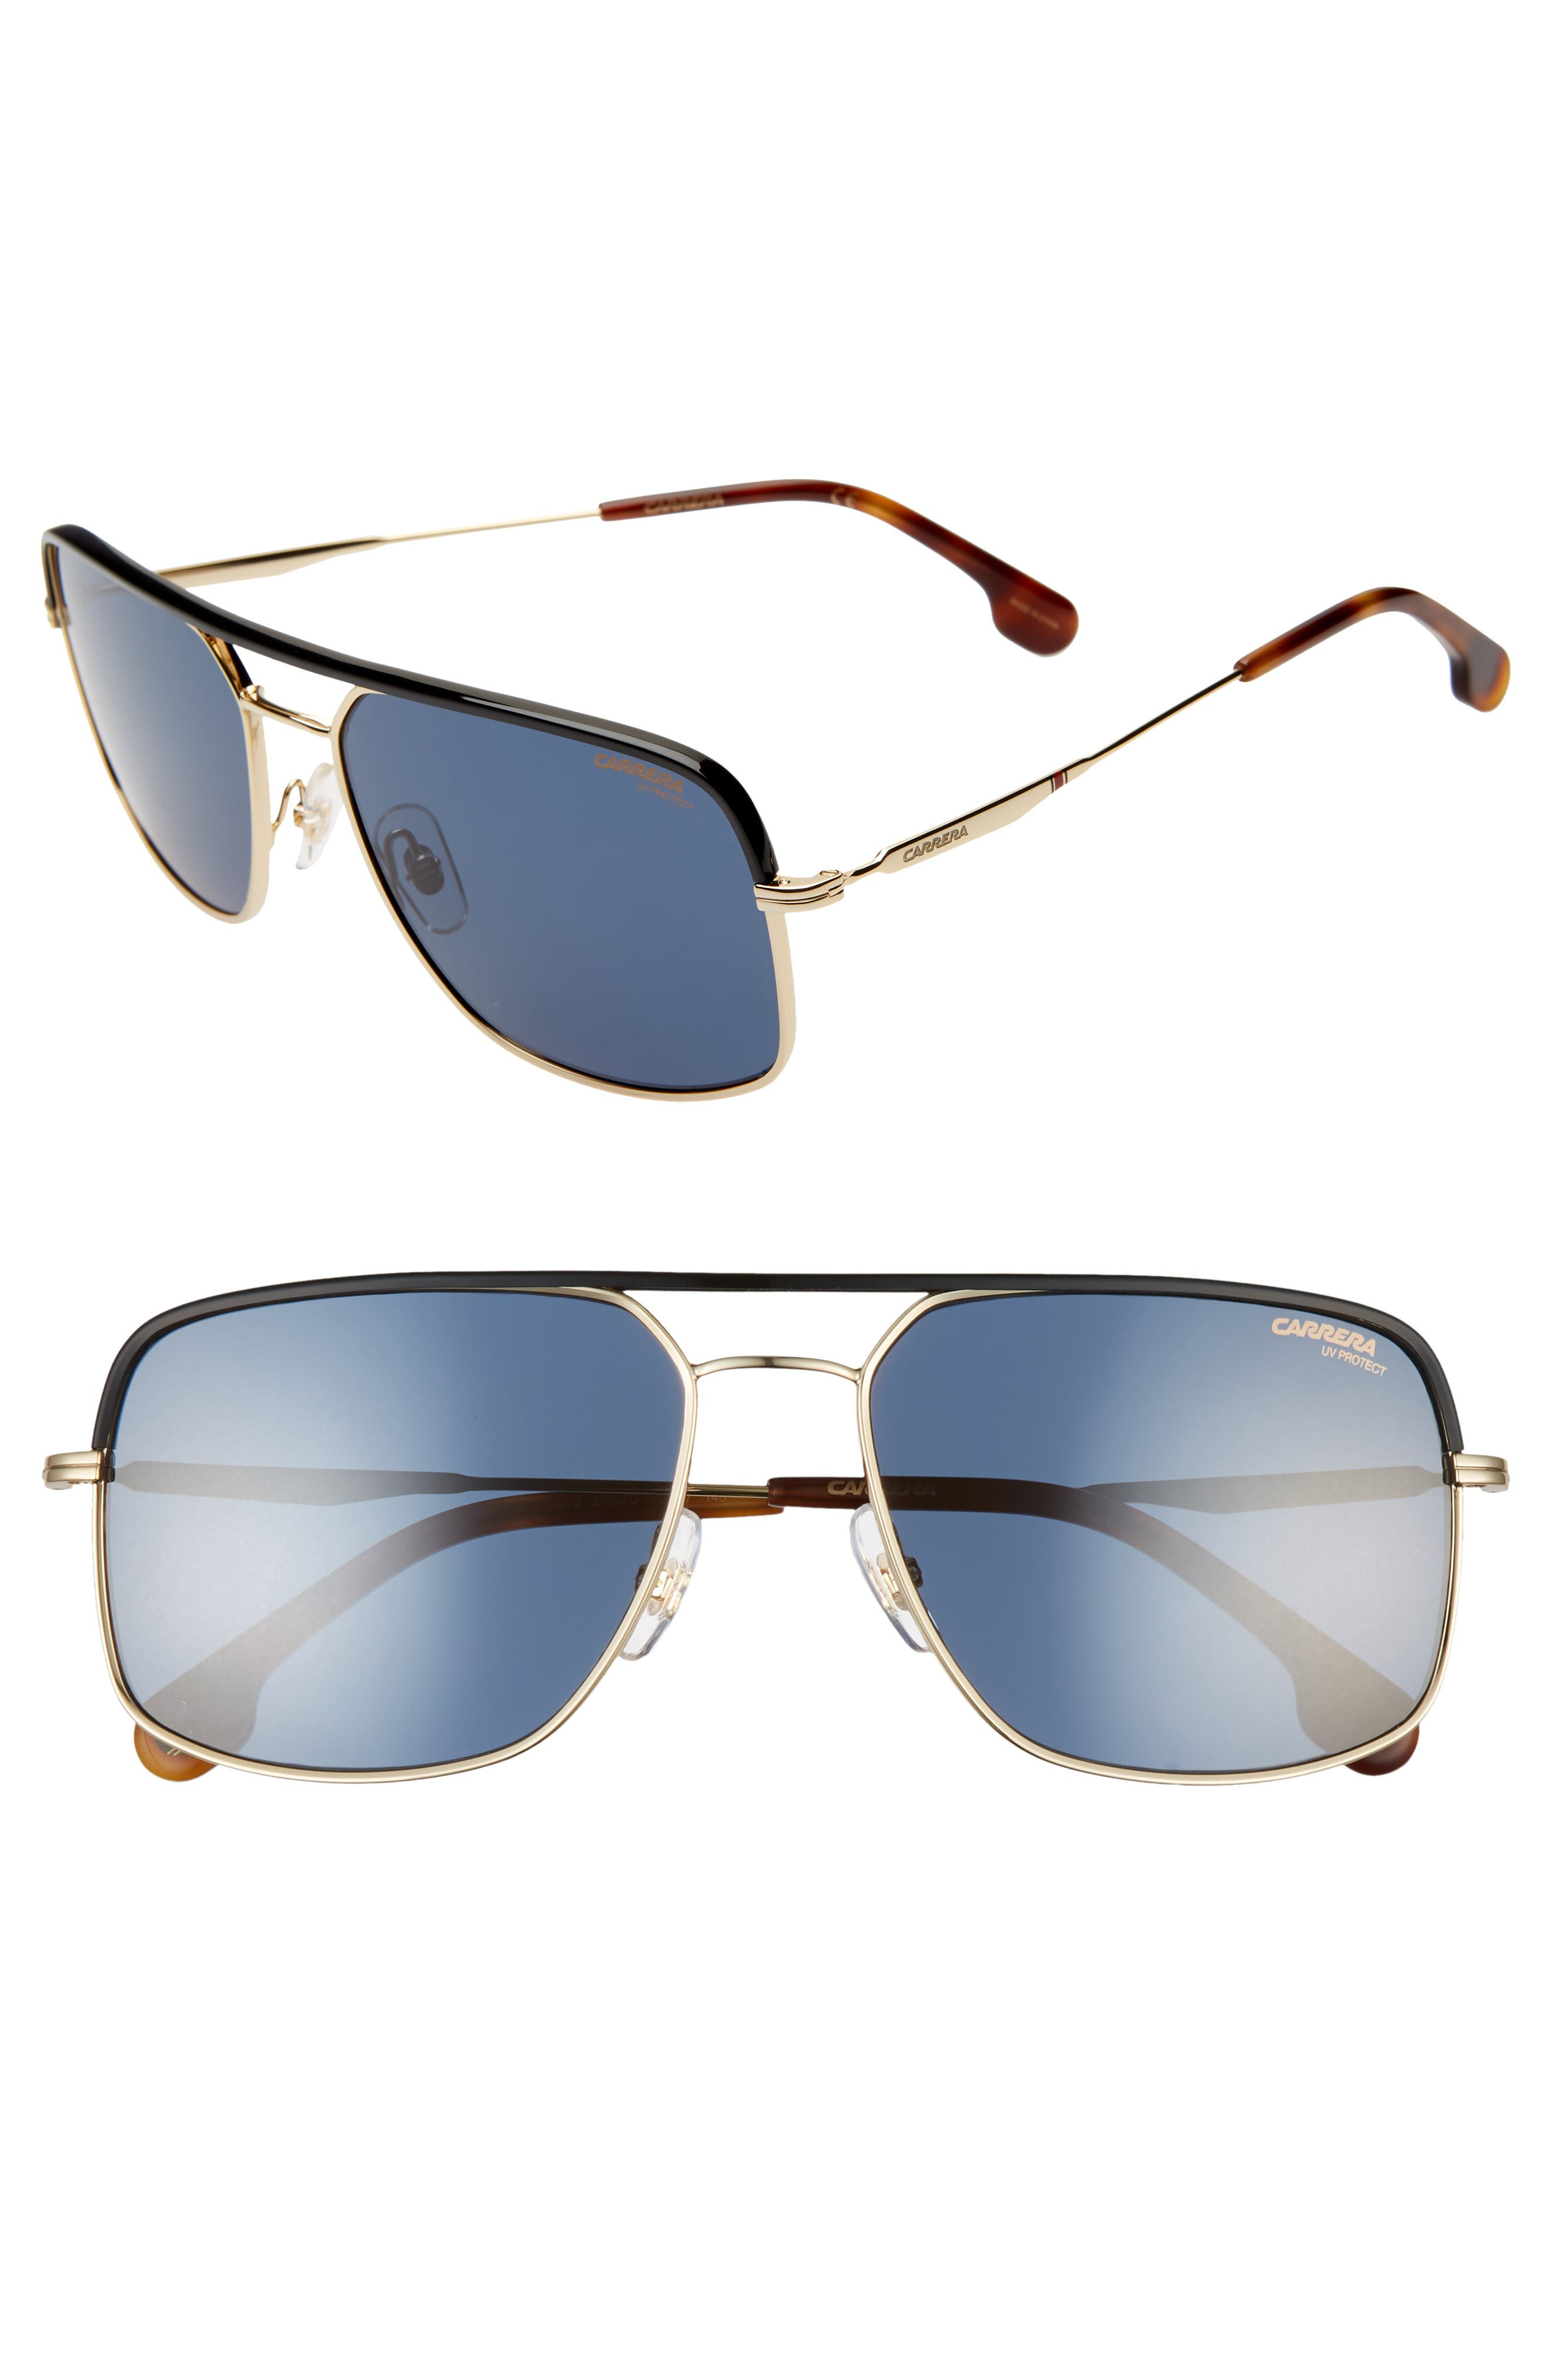 Carrera Eyewear 60Mm Gradient Aviator Sunglasses - Gold Blue